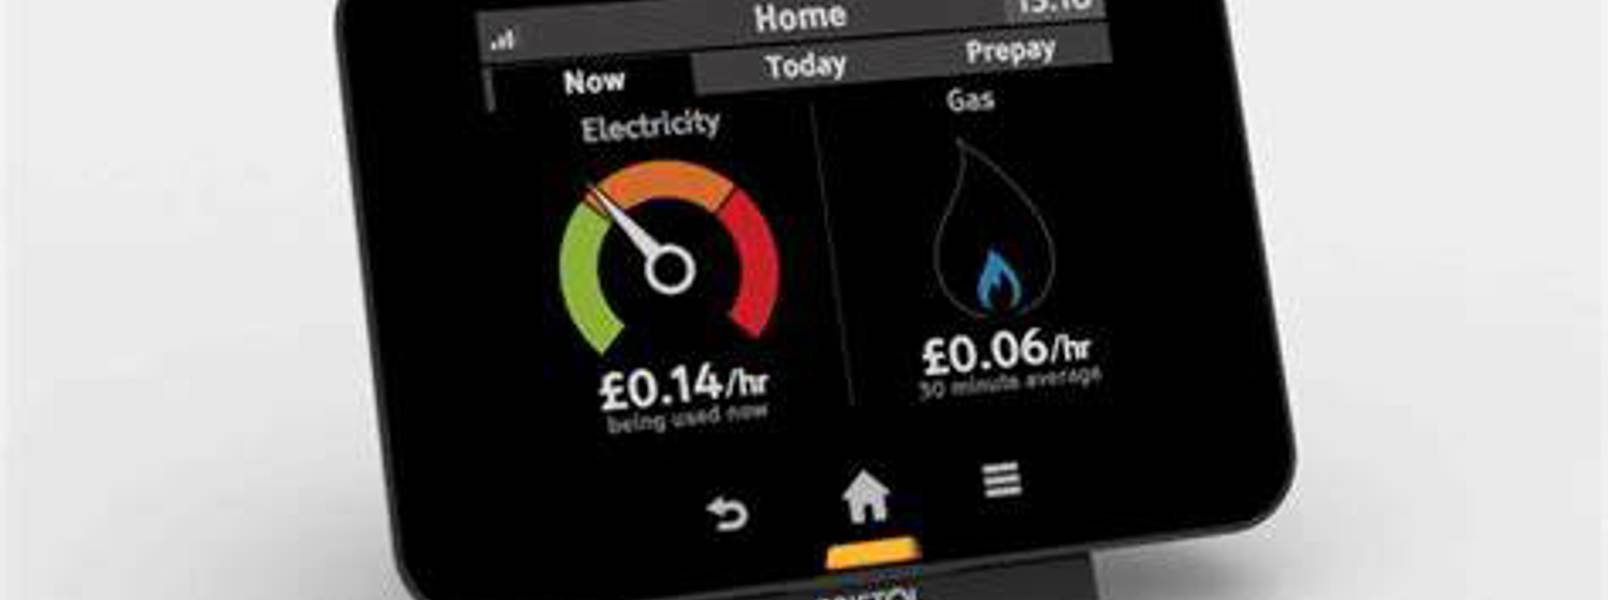 Smart meters: Nine energy suppliers ordered to become DCC users